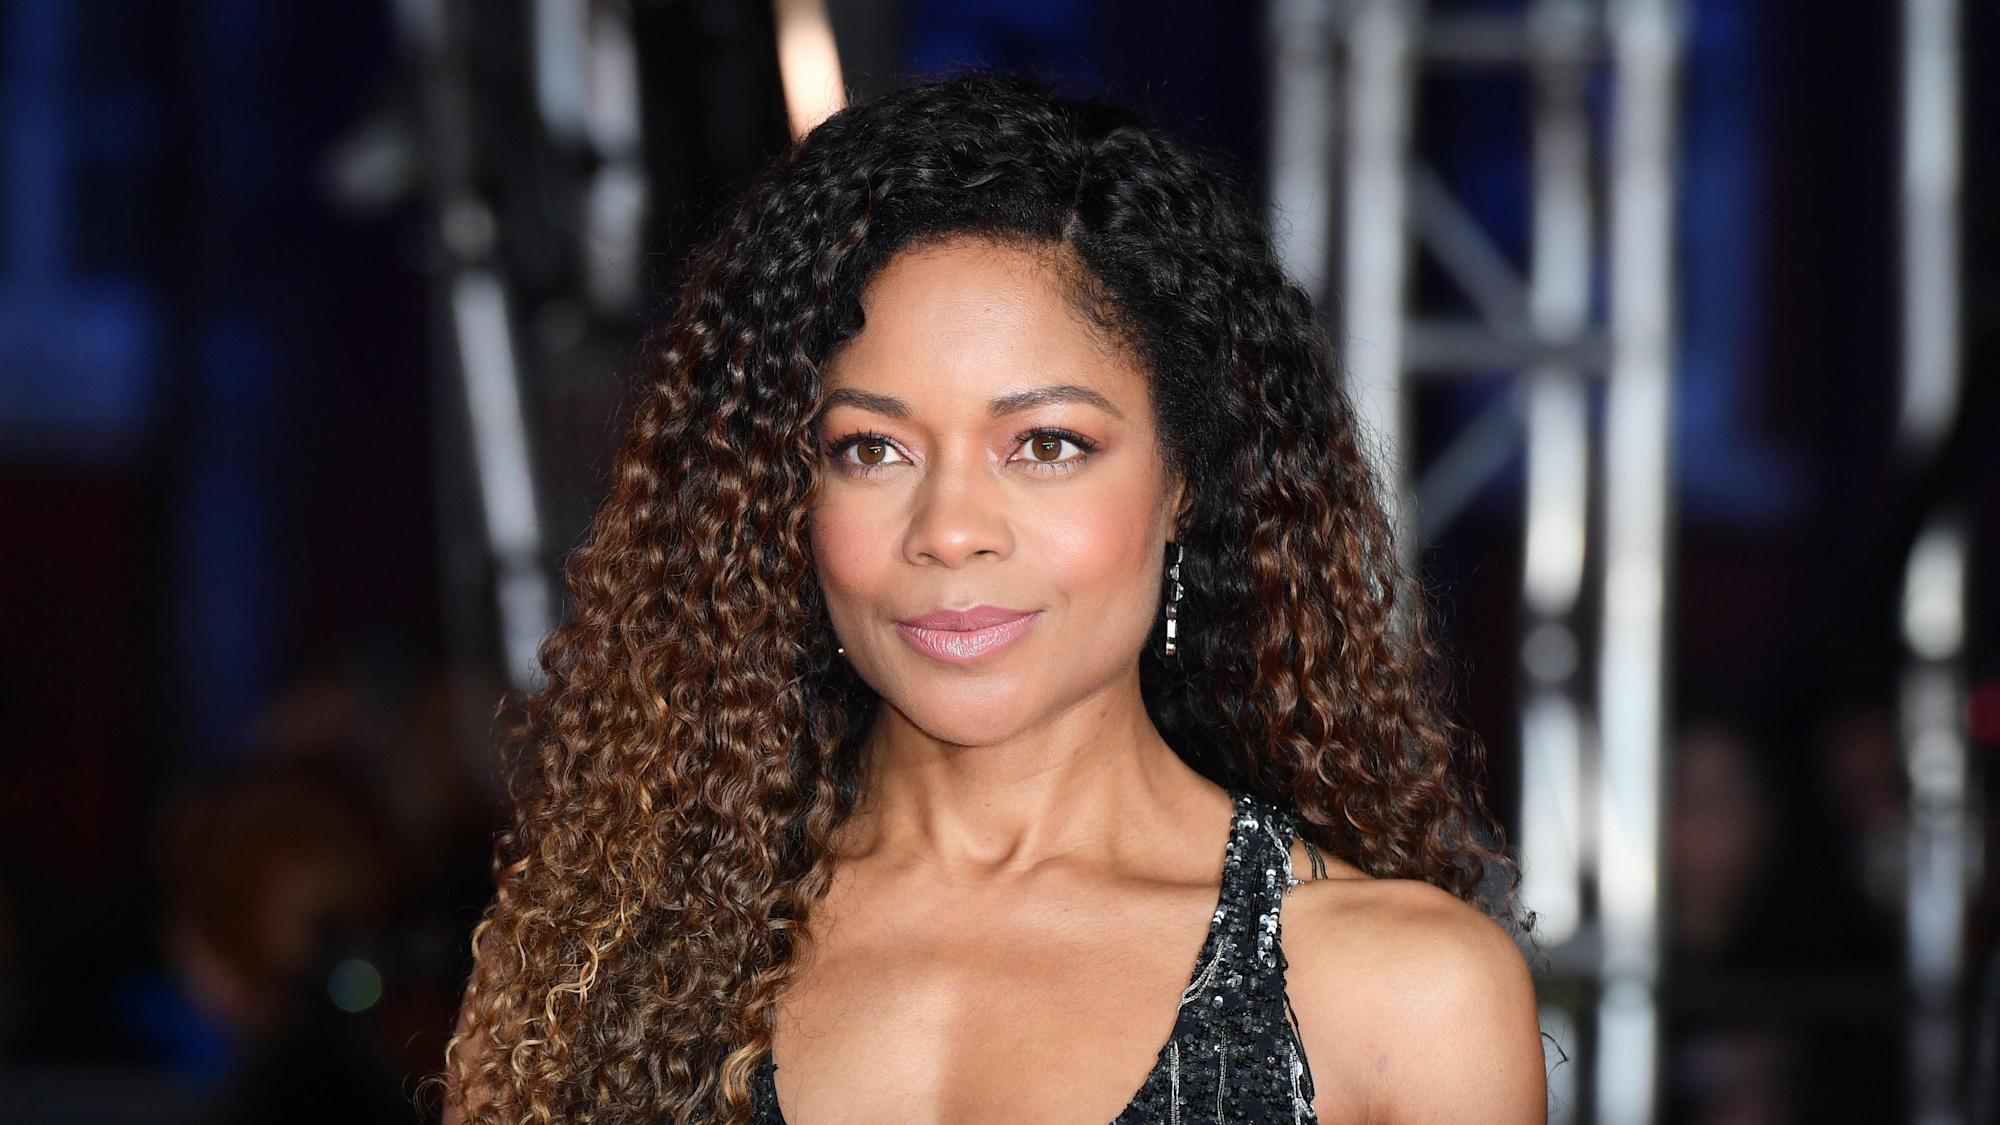 Man given restraining order for stalking Naomie Harris